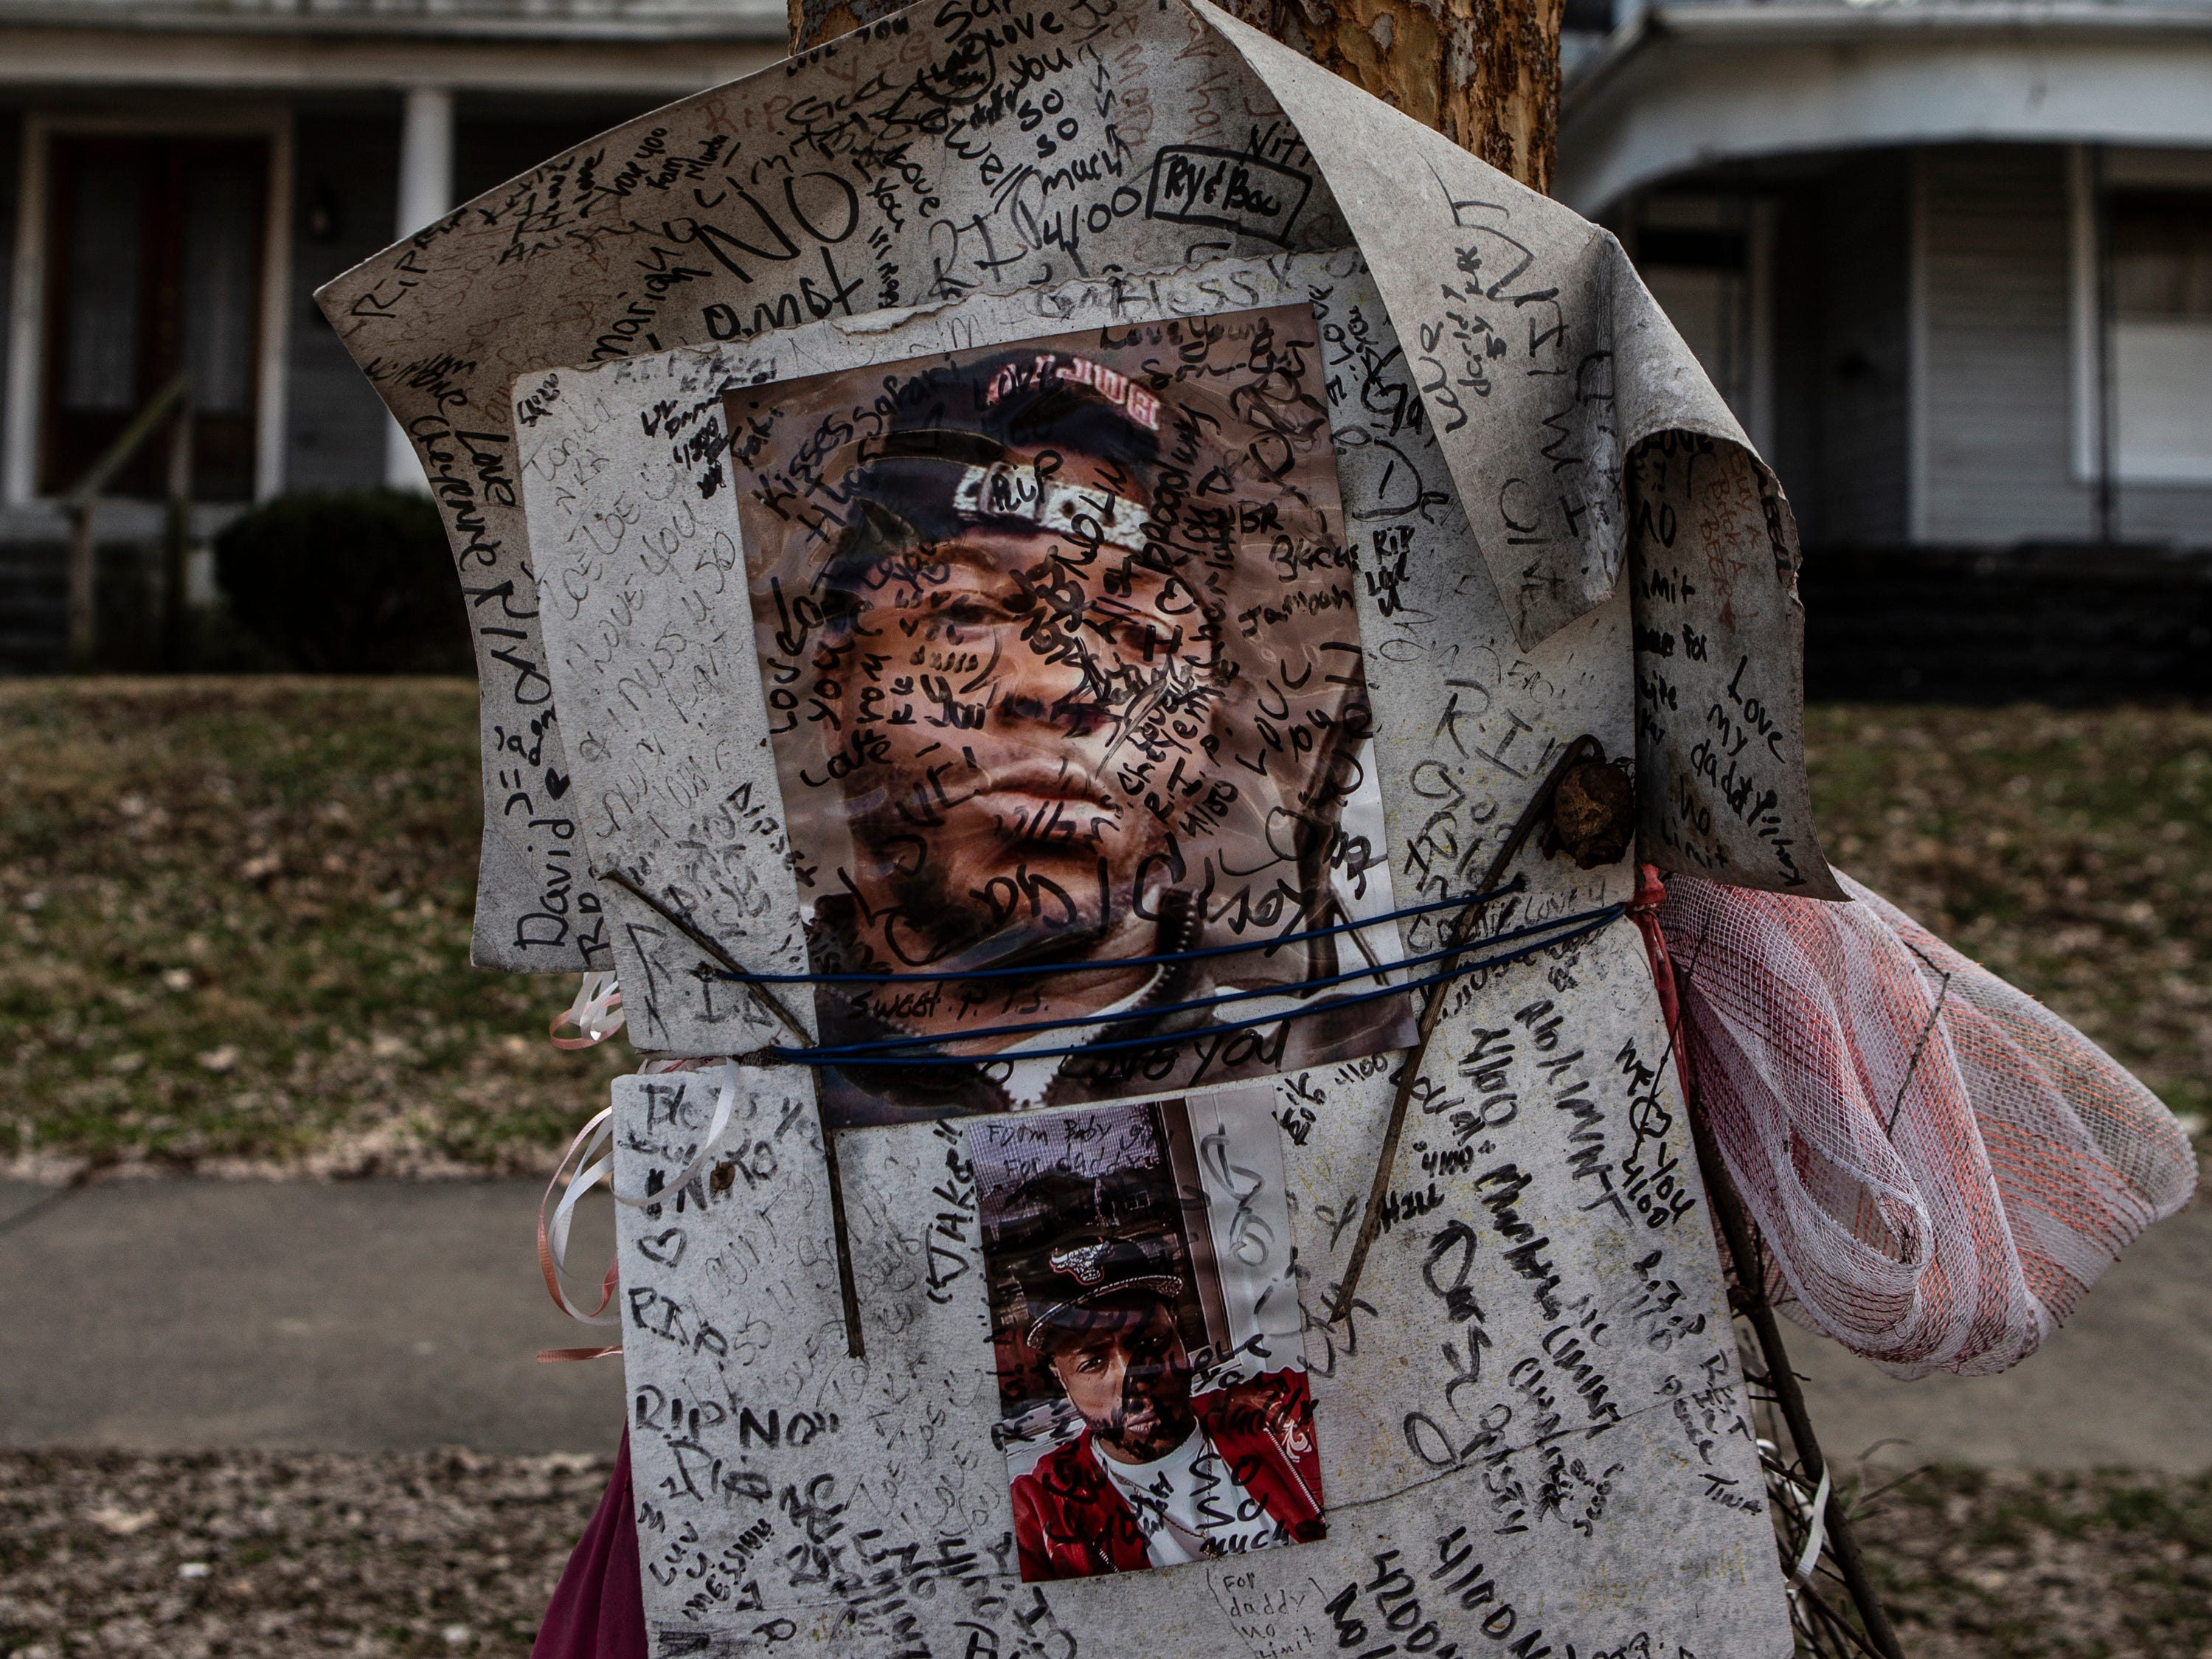 The face of Deshwan Brown, 30, can be seen through words of love on a shrine to him at 41st and Broadway, in Louisville. Brown was shot and killed a the site in 2018. Jan. 11, 2018.